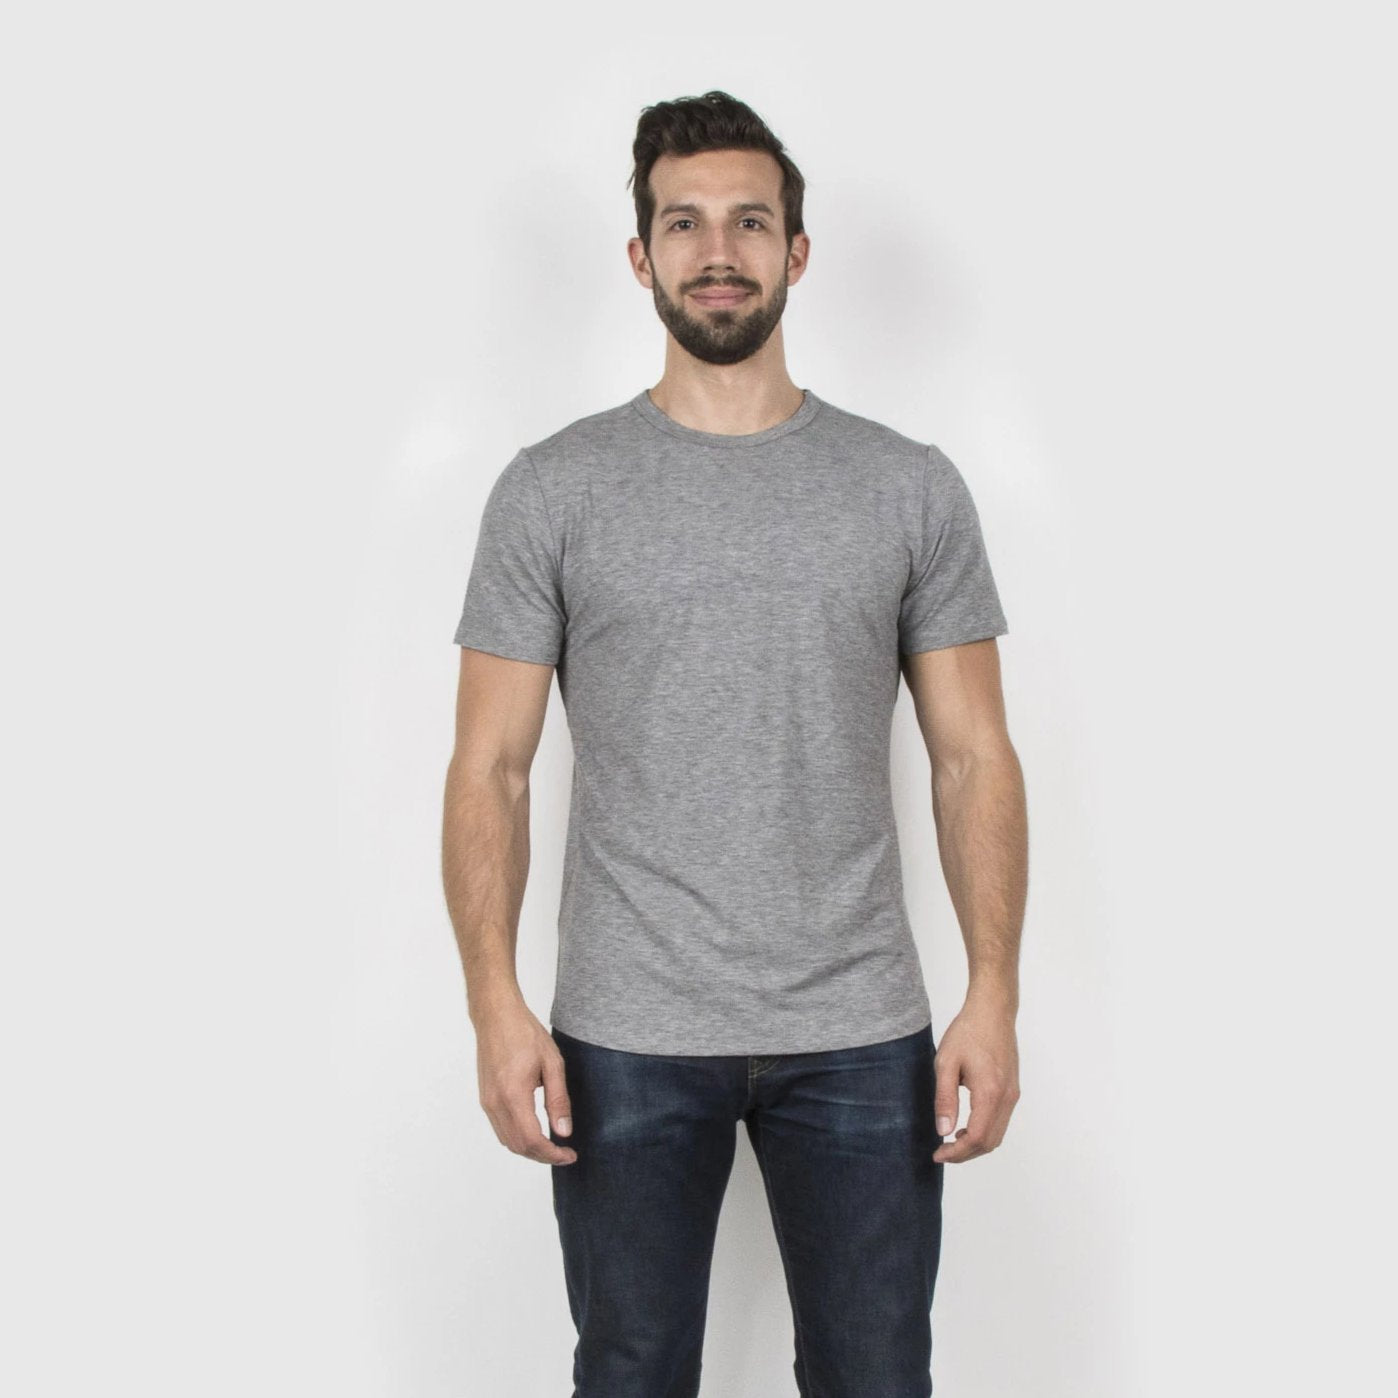 Minimalist Performance Tee